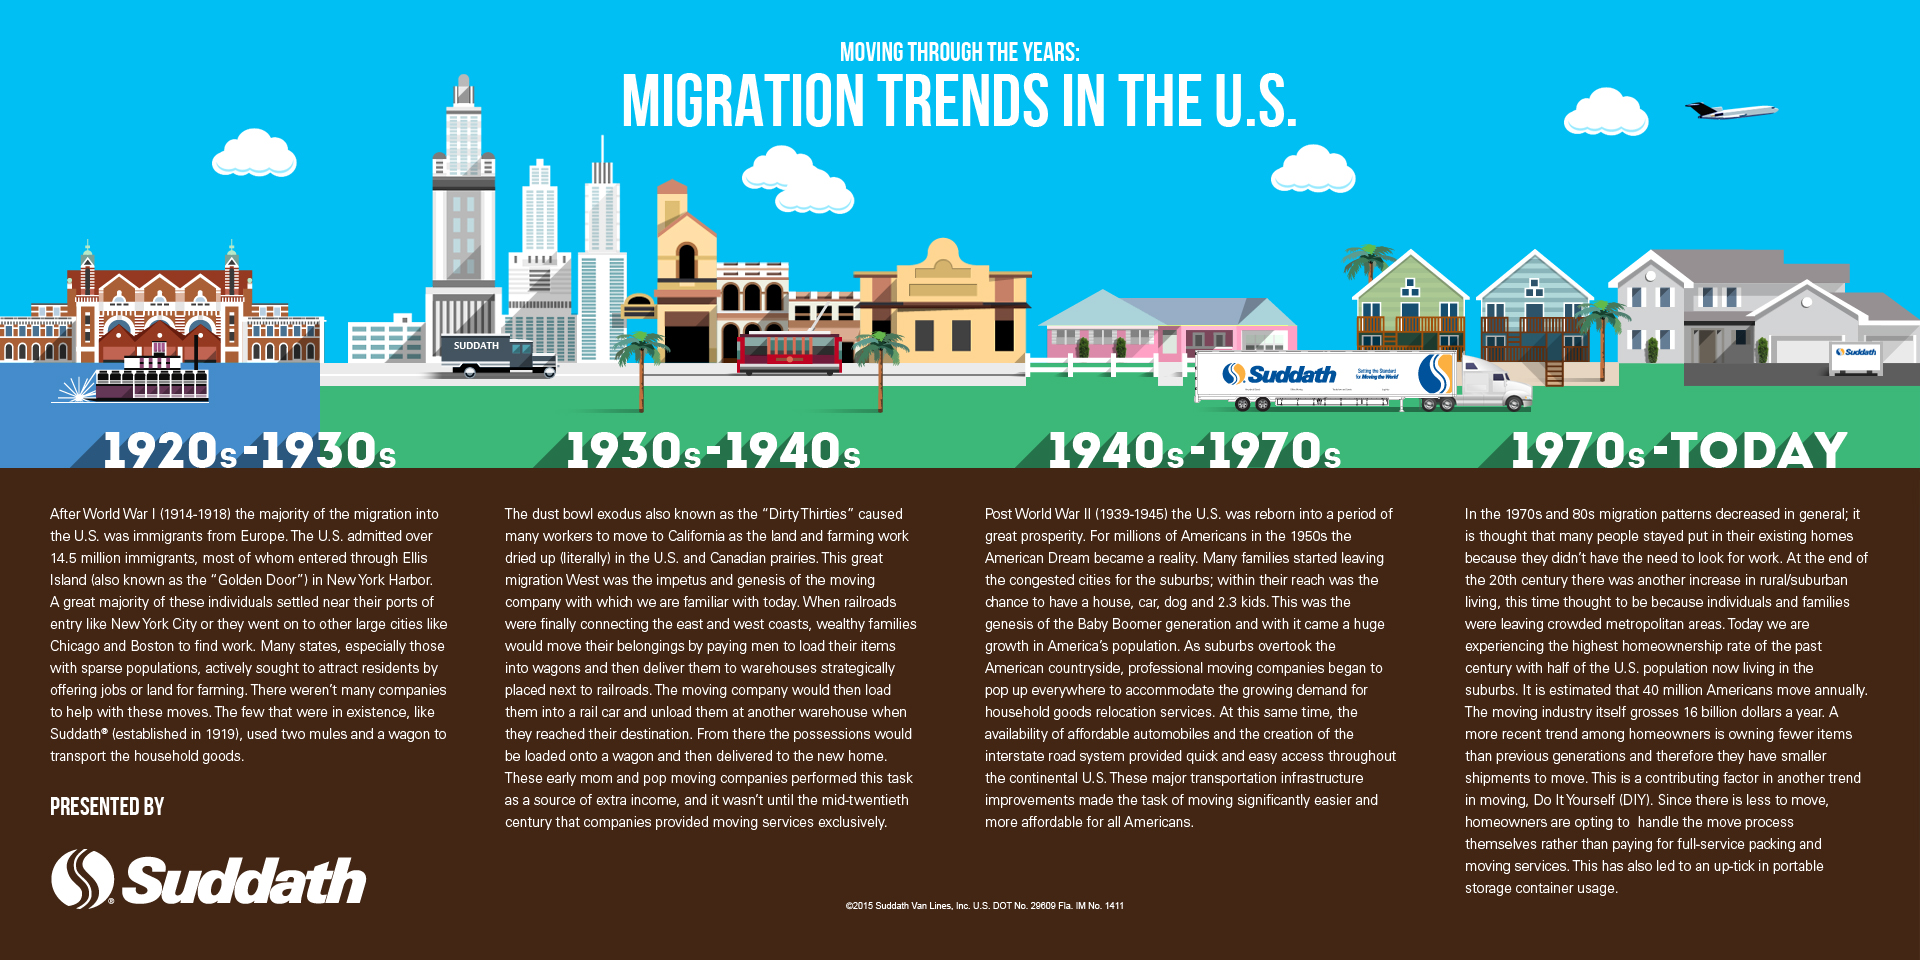 Migration Trends in the U.S.